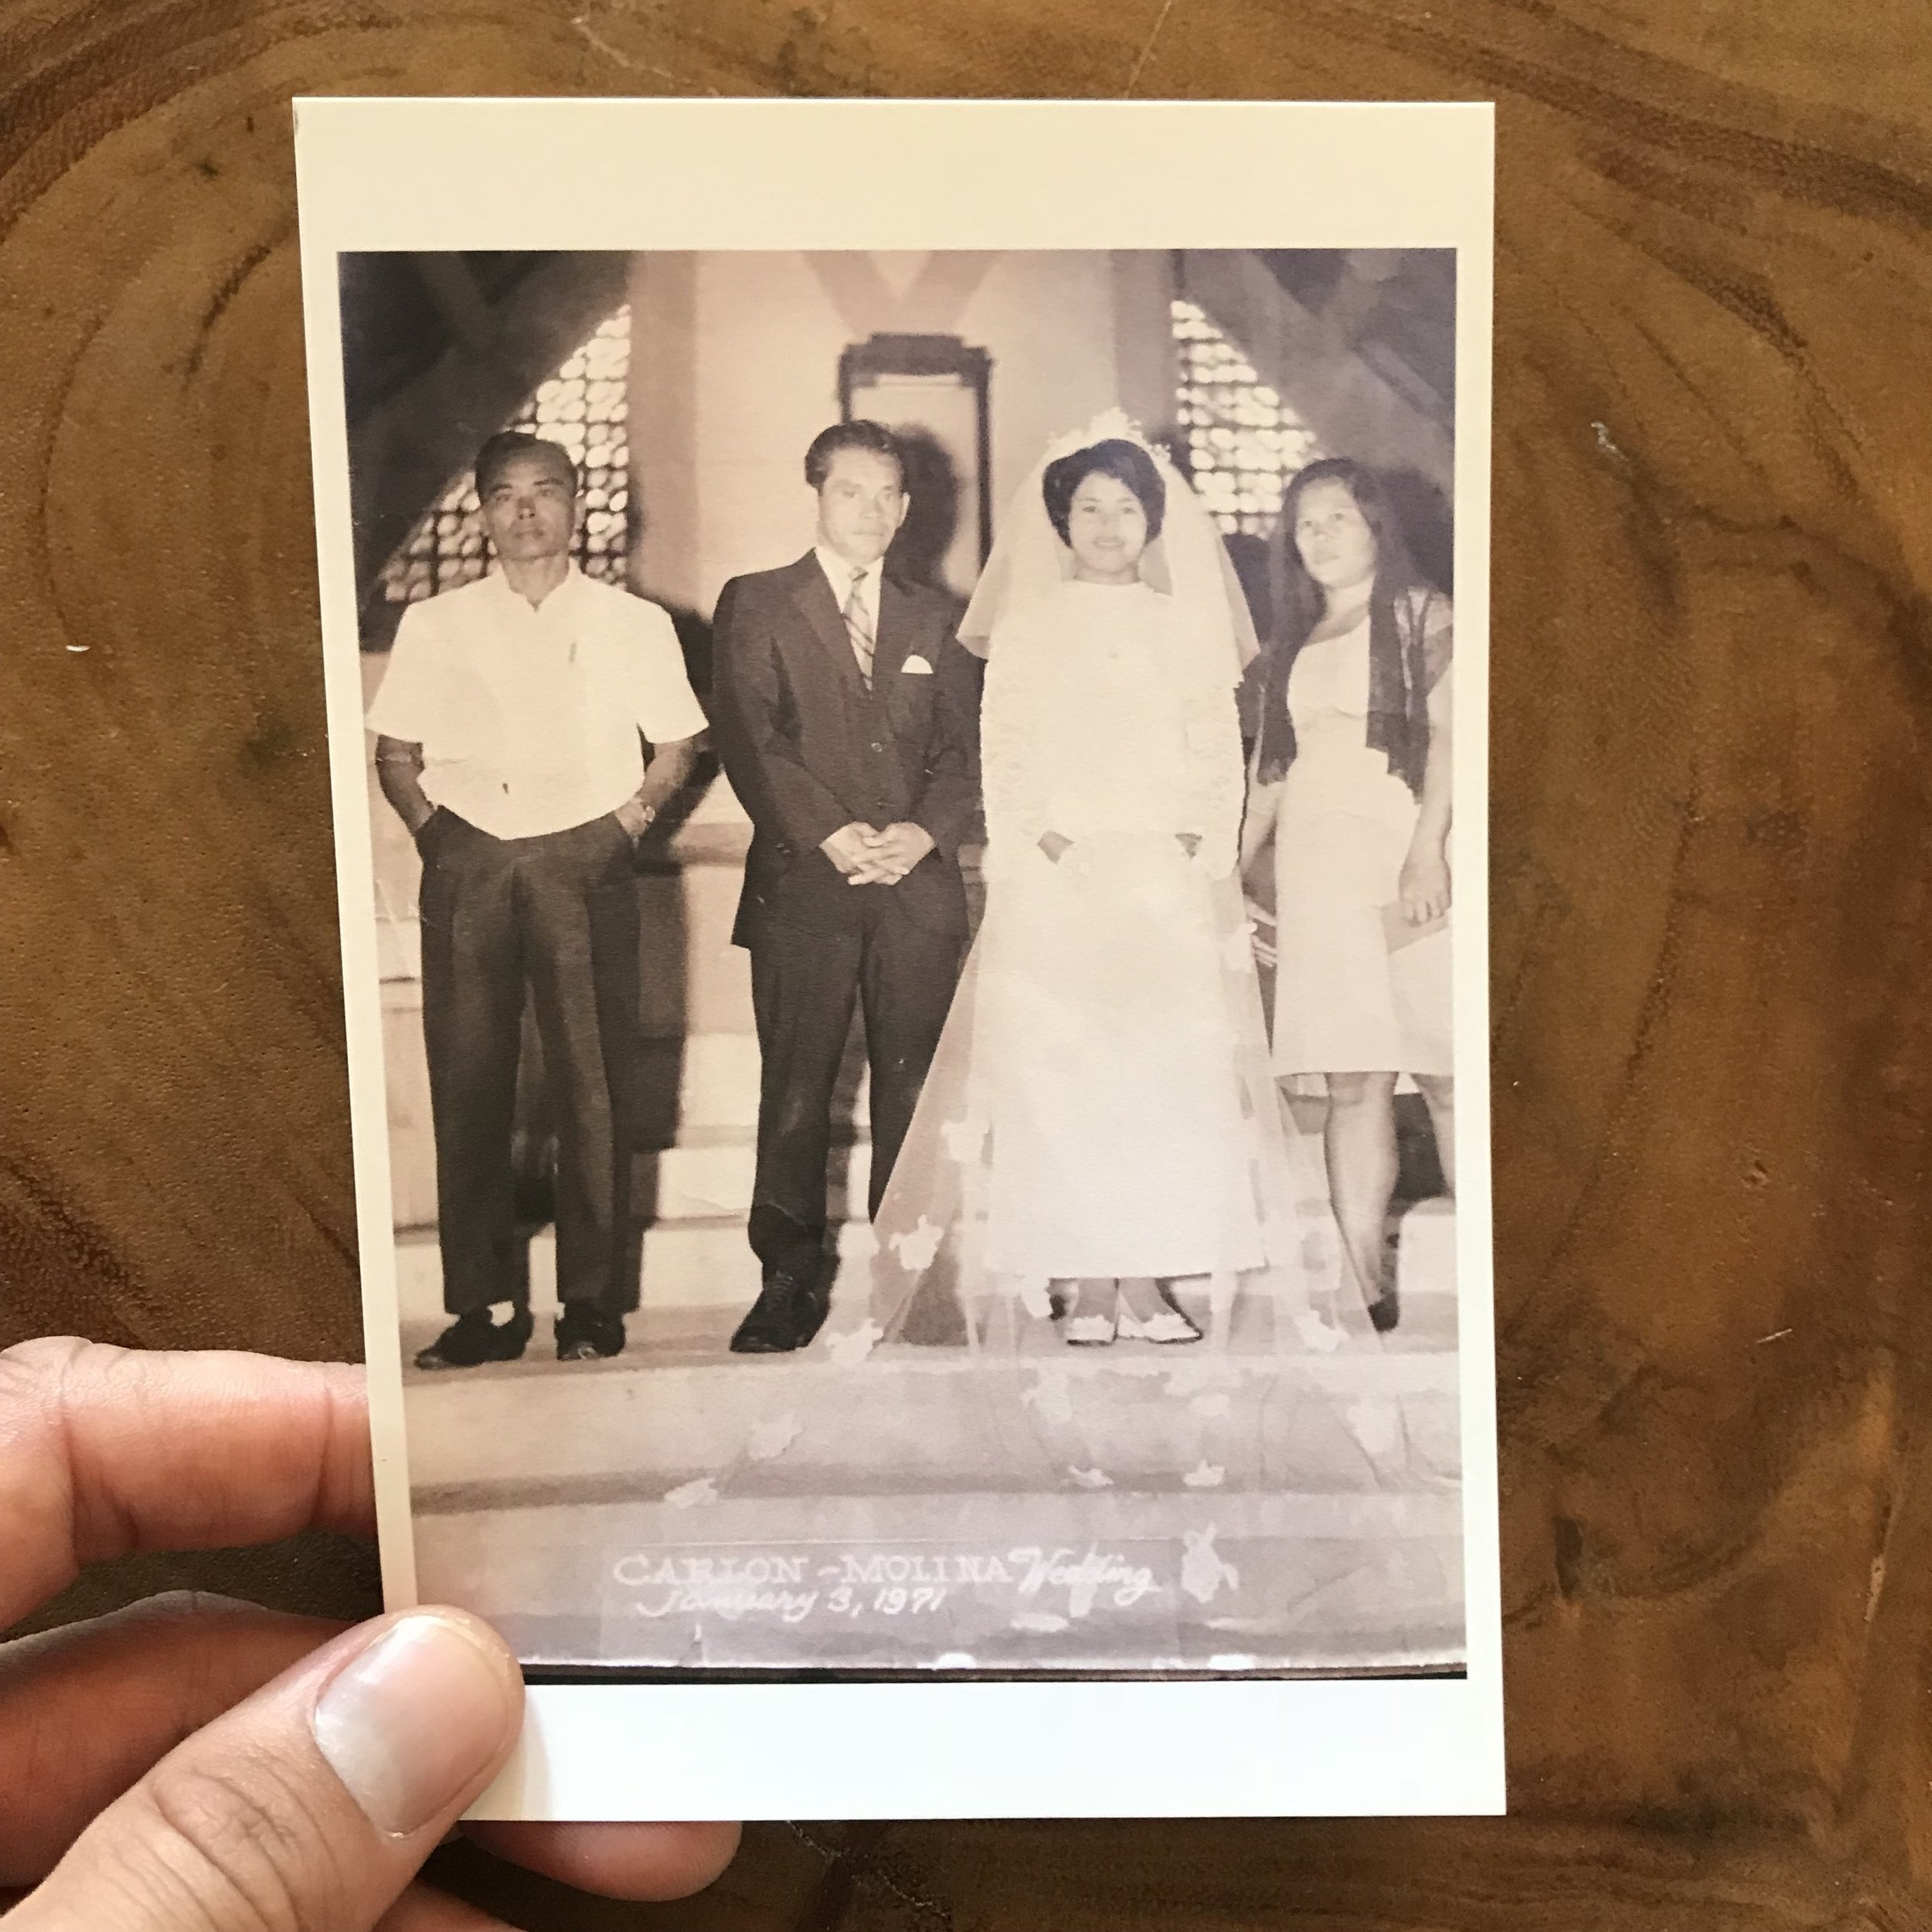 """Photo of my parents' wedding. Circa 1971 in Cabilao, Philippines.  In this photo, my dad was 60 yrs old and my mom was 20. Yep, that's a 40 yr difference. My mom was my dad's third wife... meaning he had two marriages in America and 6 kids before he decided at the very fertile age of 60 to go back to the motherland — the same small island he grew up on — to swoop up my 20 year old mother and start ANOTHER family. It's actually not too uncommon that Filipino families have an old dad and a young mom... not exactly sure why this is. Any historians, chime in.  I wish I could ask my dad, """"why?"""" A series of why's, including: why did you want more kids? I mean, I'm grateful... if he didn't think at the age of 76 when he had me to have more kids, well... I wouldn't be here posting this on Instagram rn. Your feed would be filled with other shit, like cats and food. And maybe some topless men. Well, that's what usually populates my feed..  I'm curious about my parents' relationship and how their love for each other grew, evolved, or even started for that matter. But I understand they loved each other... and I have many, many, many questions... but I'll just stop, for now, at their unconditional love for me and my family."""